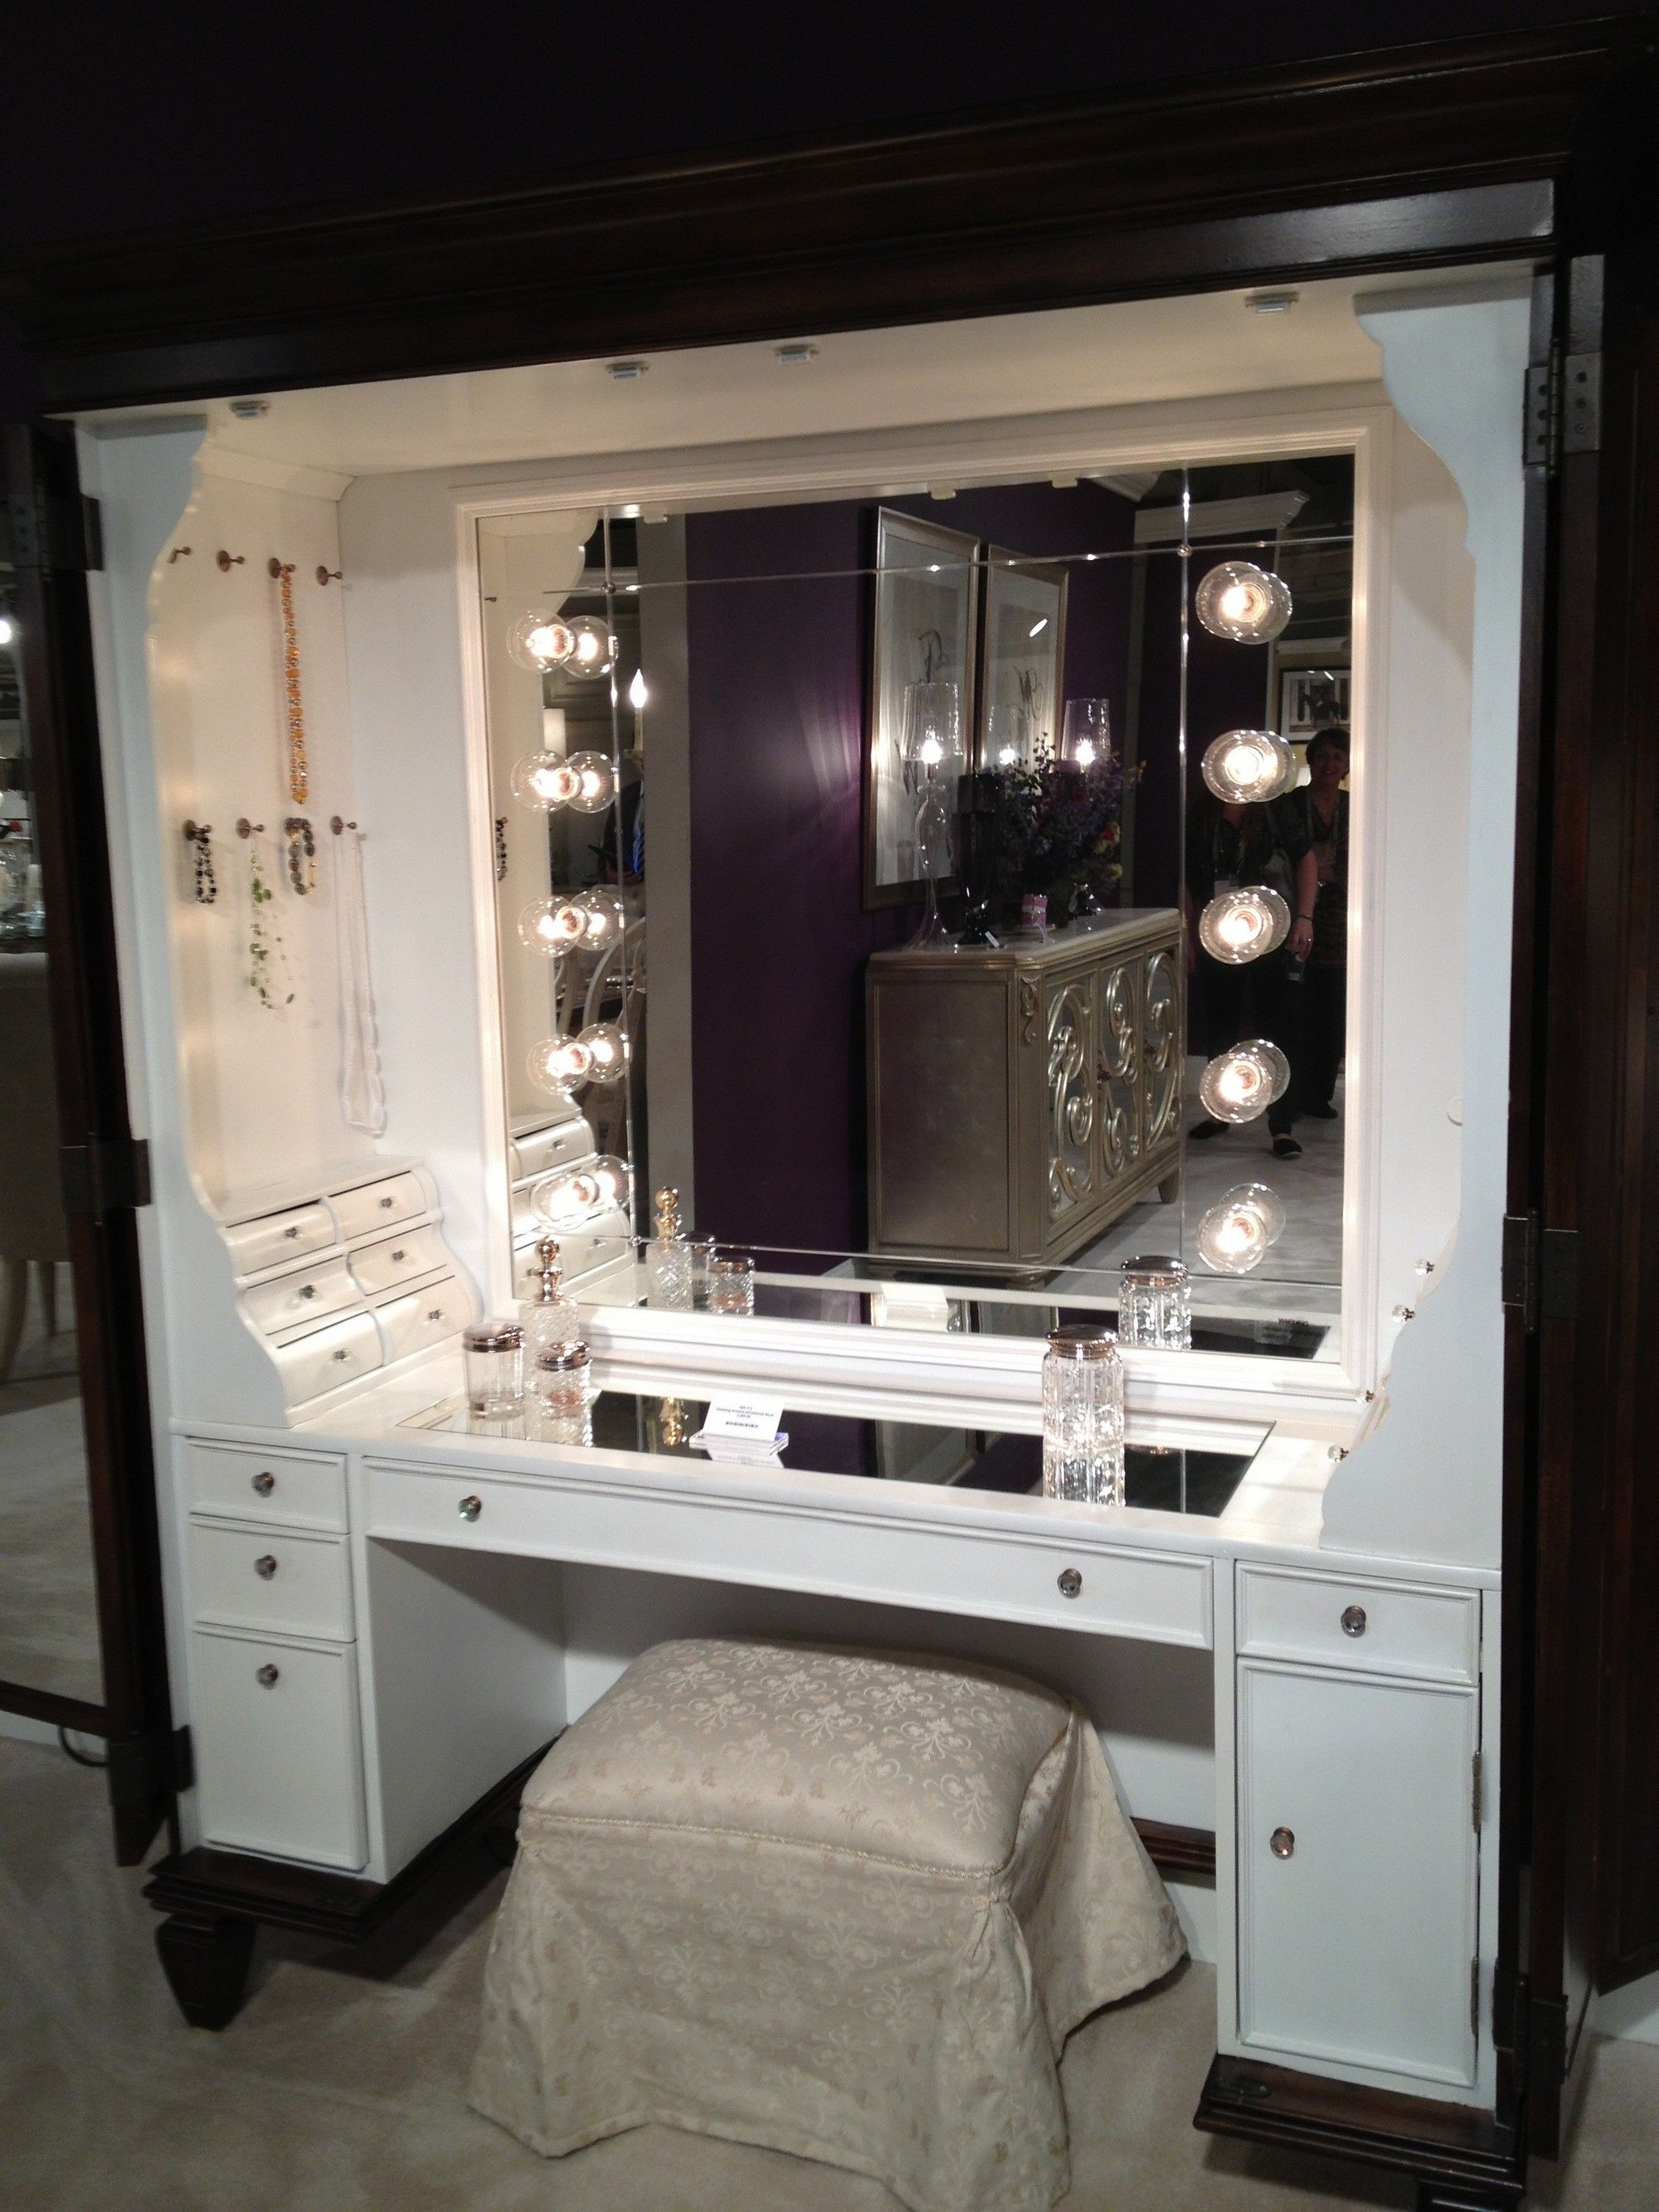 large vanity mirror with lights. big vanity Furniture  Black Makeup Table With Lighted Mirror And Small Fabric Bench Show Perfect Beauty in Maximum Way by Using Vanity with